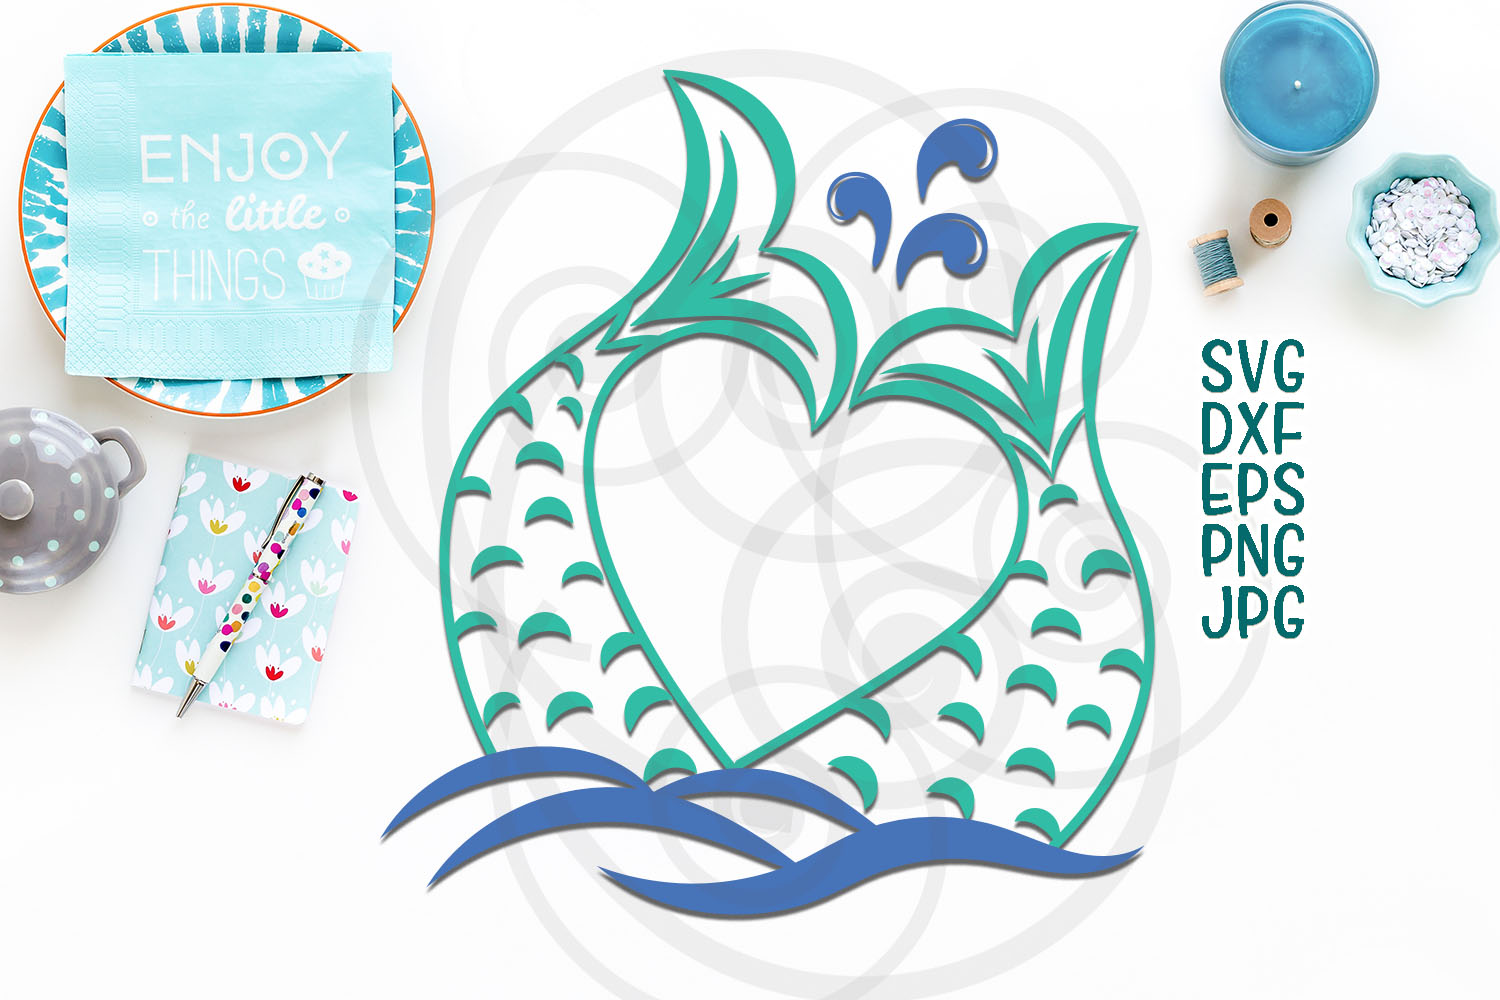 Download Free Mermaid Tail Graphic By Cornelia Creative Fabrica for Cricut Explore, Silhouette and other cutting machines.